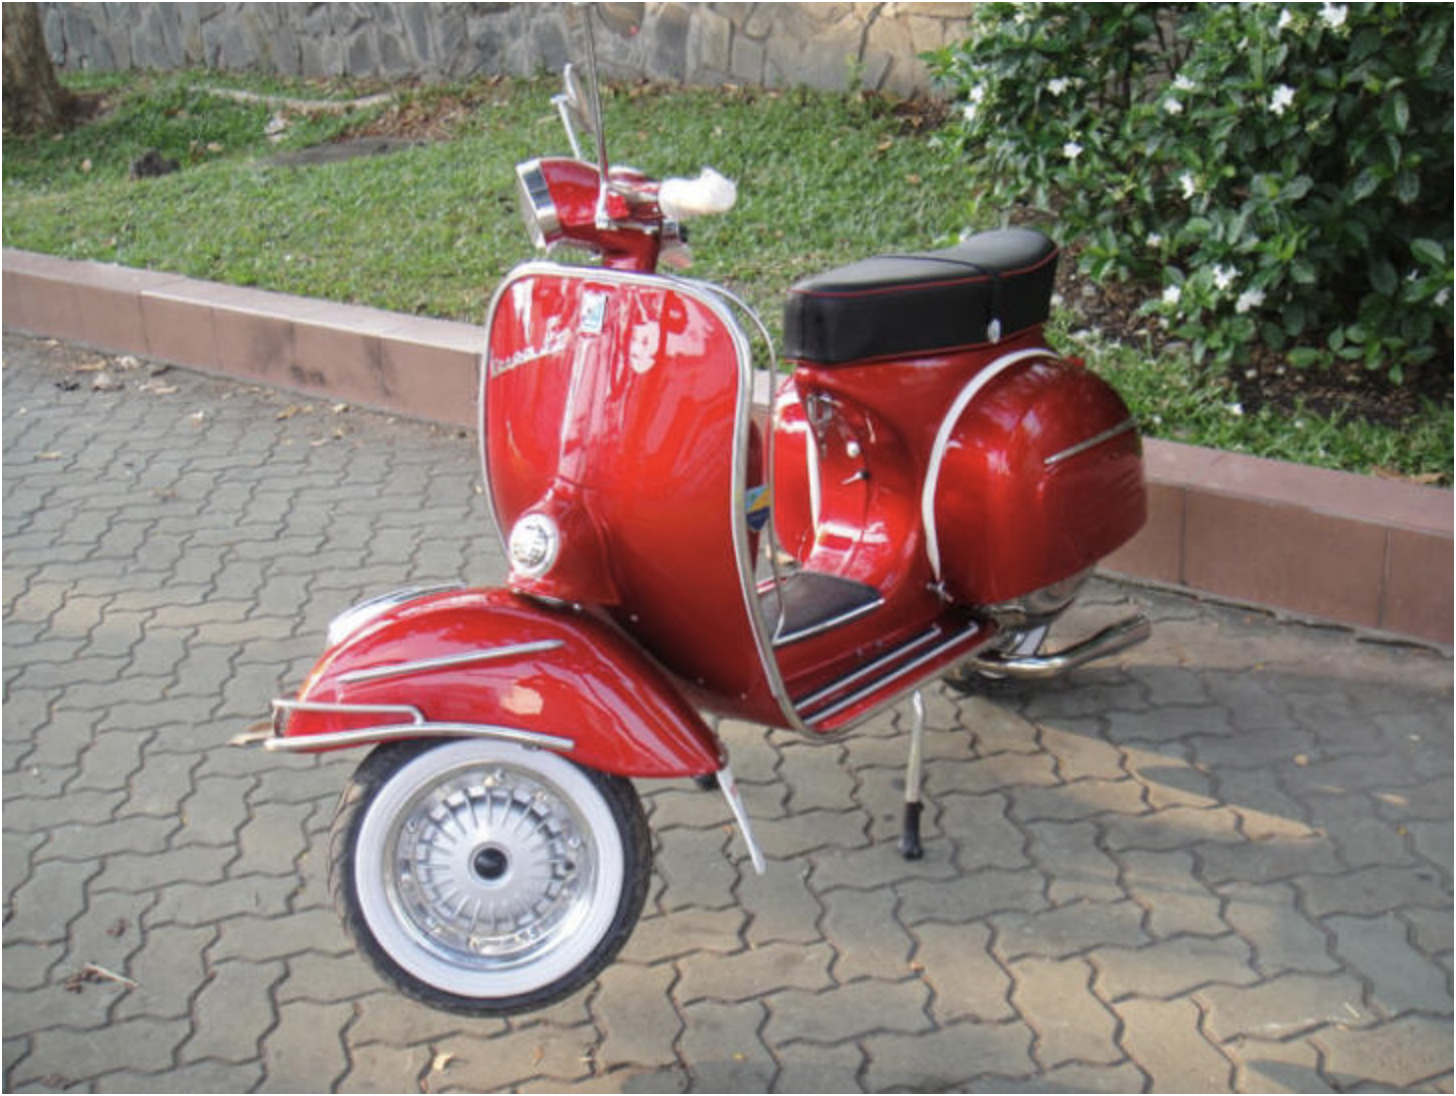 1967 Vespa SS180 - Red - FULLY Restored For Sale (picture 2 of 6)